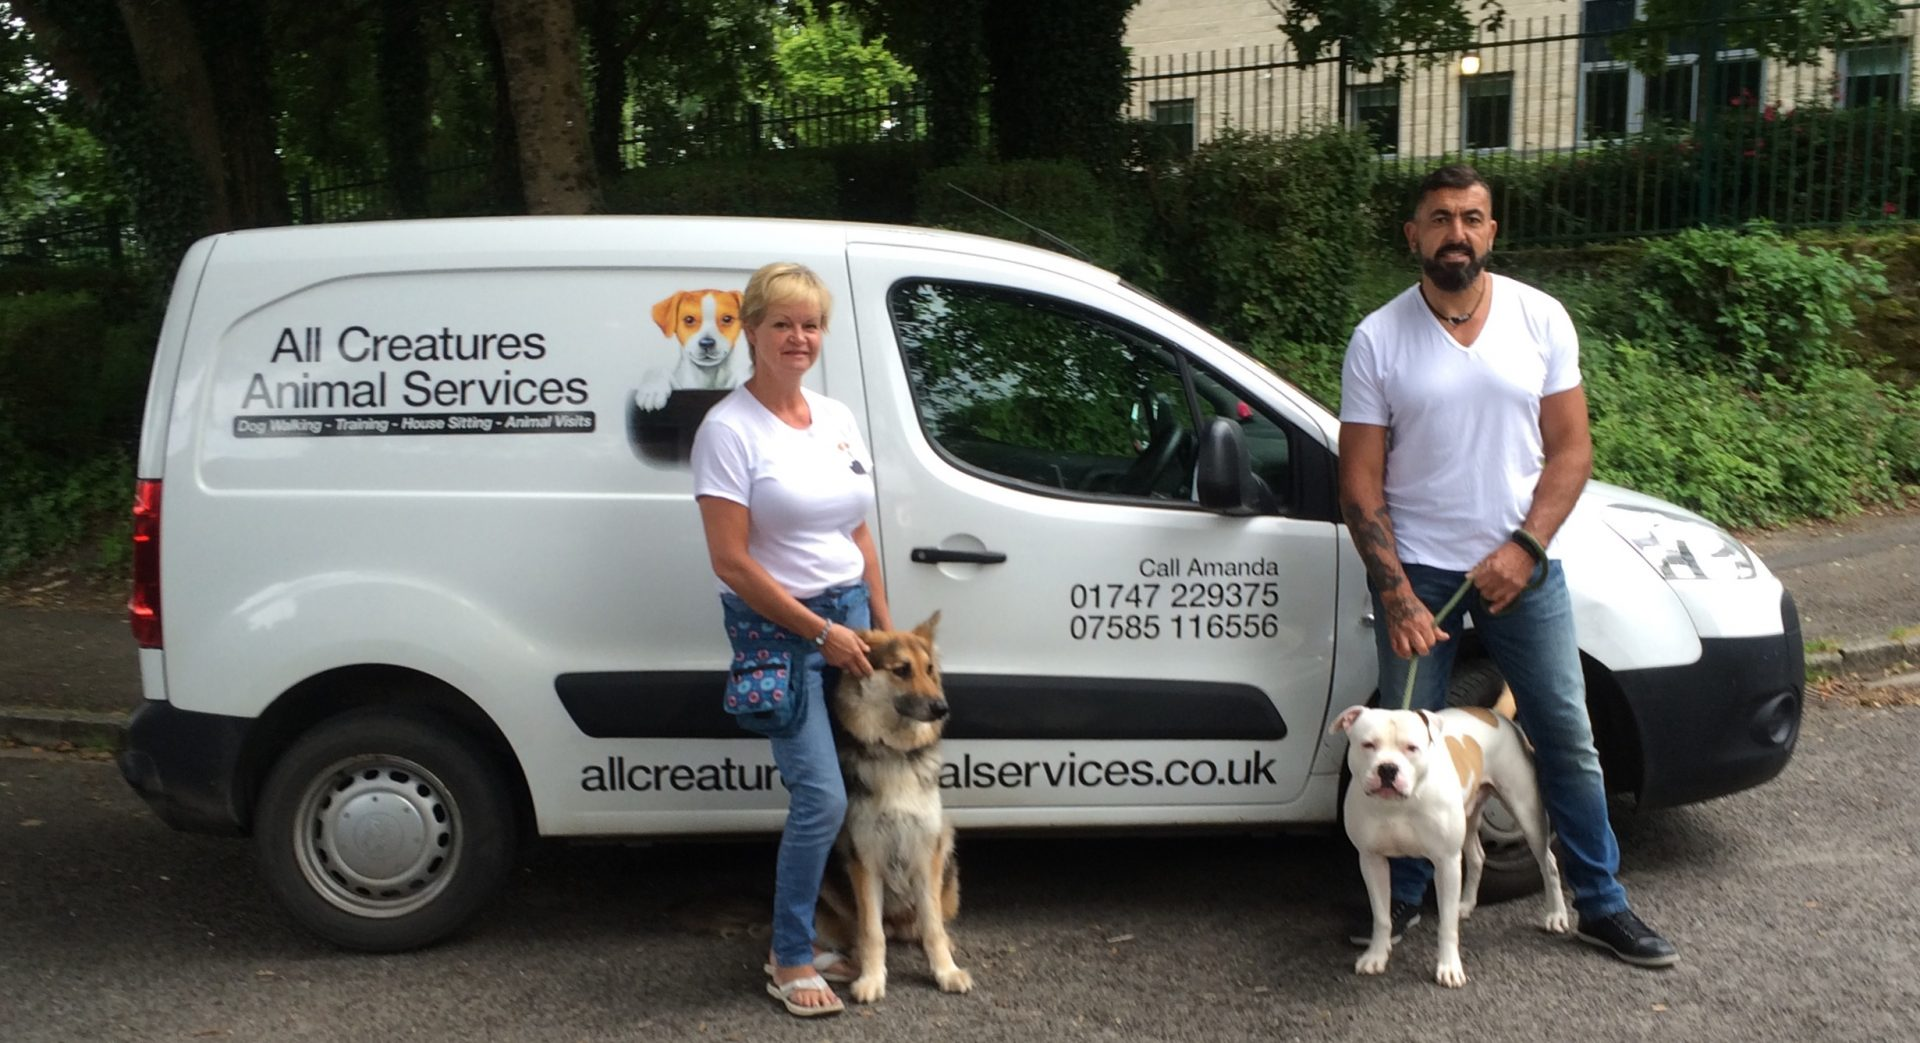 Pet care services in Shaftesbury